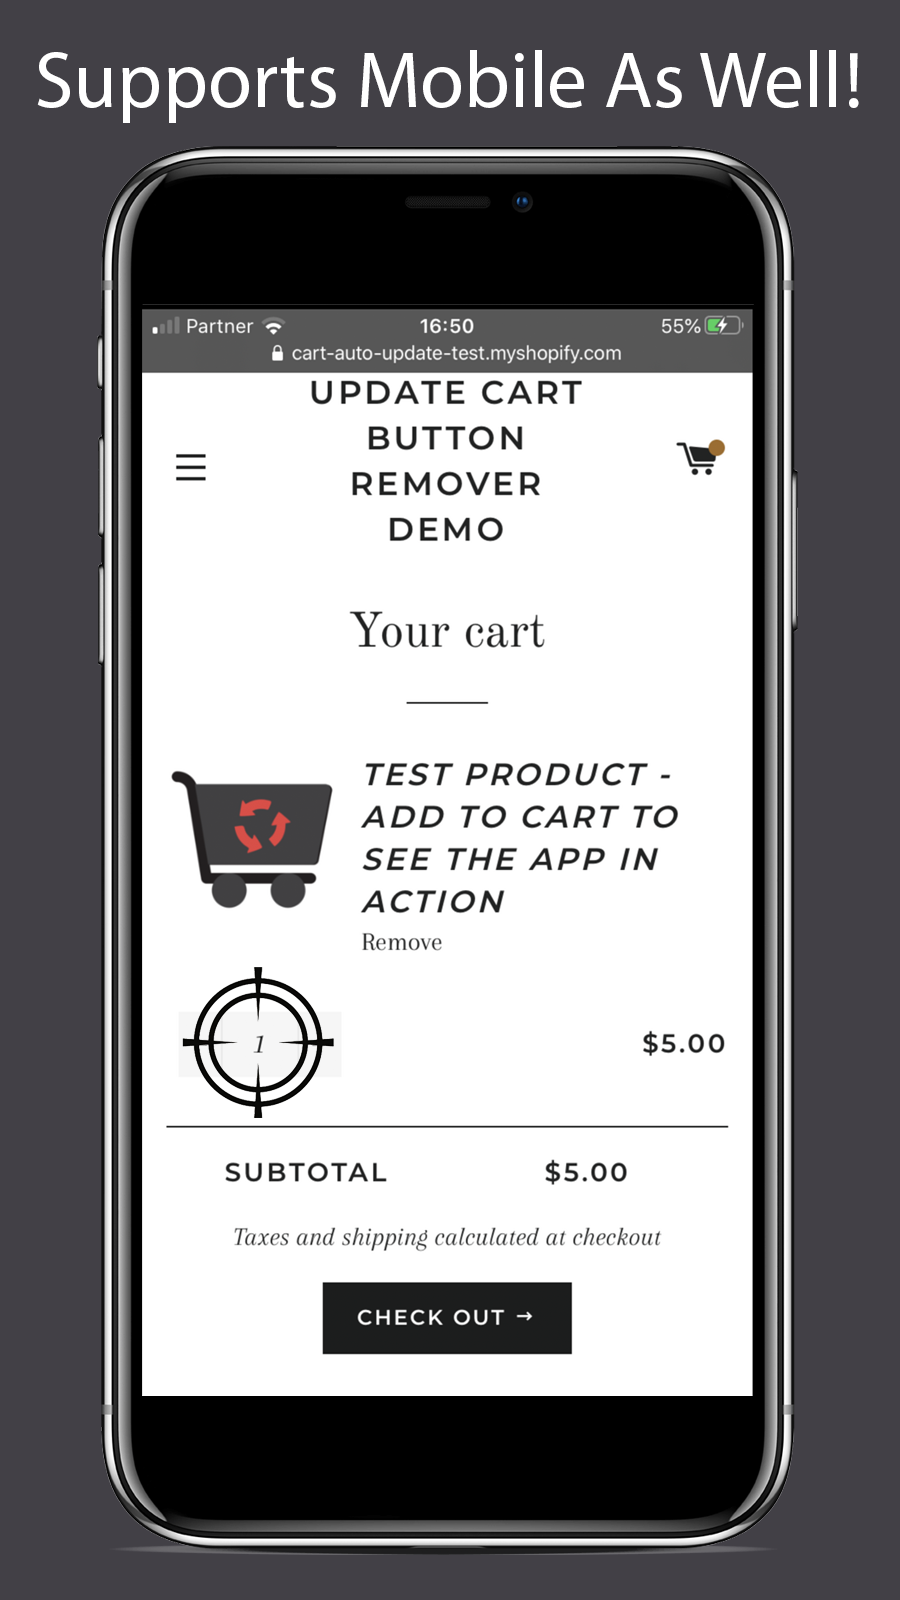 The app supports mobile version of stores as well